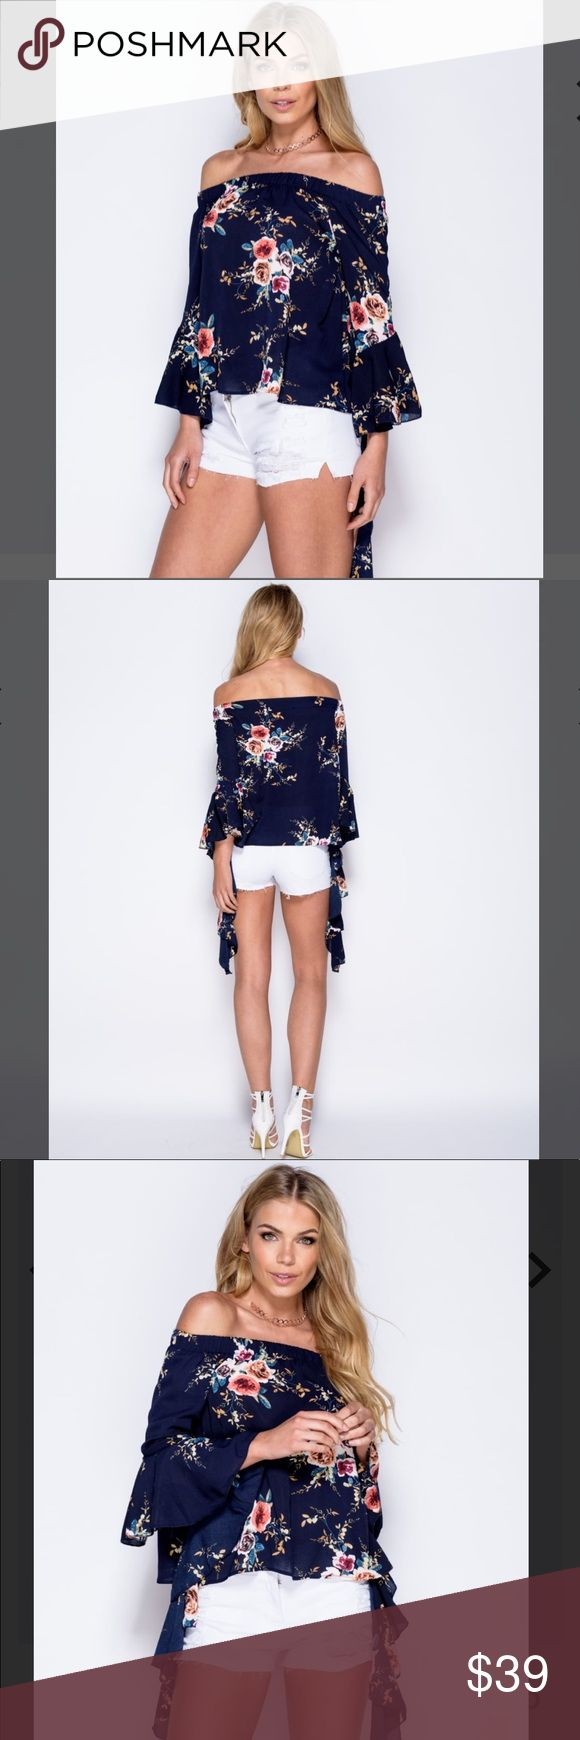 🌸 Bardot Off-Shoulder Floral Top - Navy 🌸 Hit all right style notes this season with this bardot off-shoulder, flowy floral top with flared sleeves. Precious with white shorts or distressed skinny jeans! (Also available in Wine in another listing.) *Sizes are SM/M or M/L. Please specify size when ordering a medium or selection will be made for you. Thank you!*  Floral off the shoulder bardot top Long flared sleeves Crepe fabric Model is a UK size 8/US size 4 and her height is 5'8 Beauty…